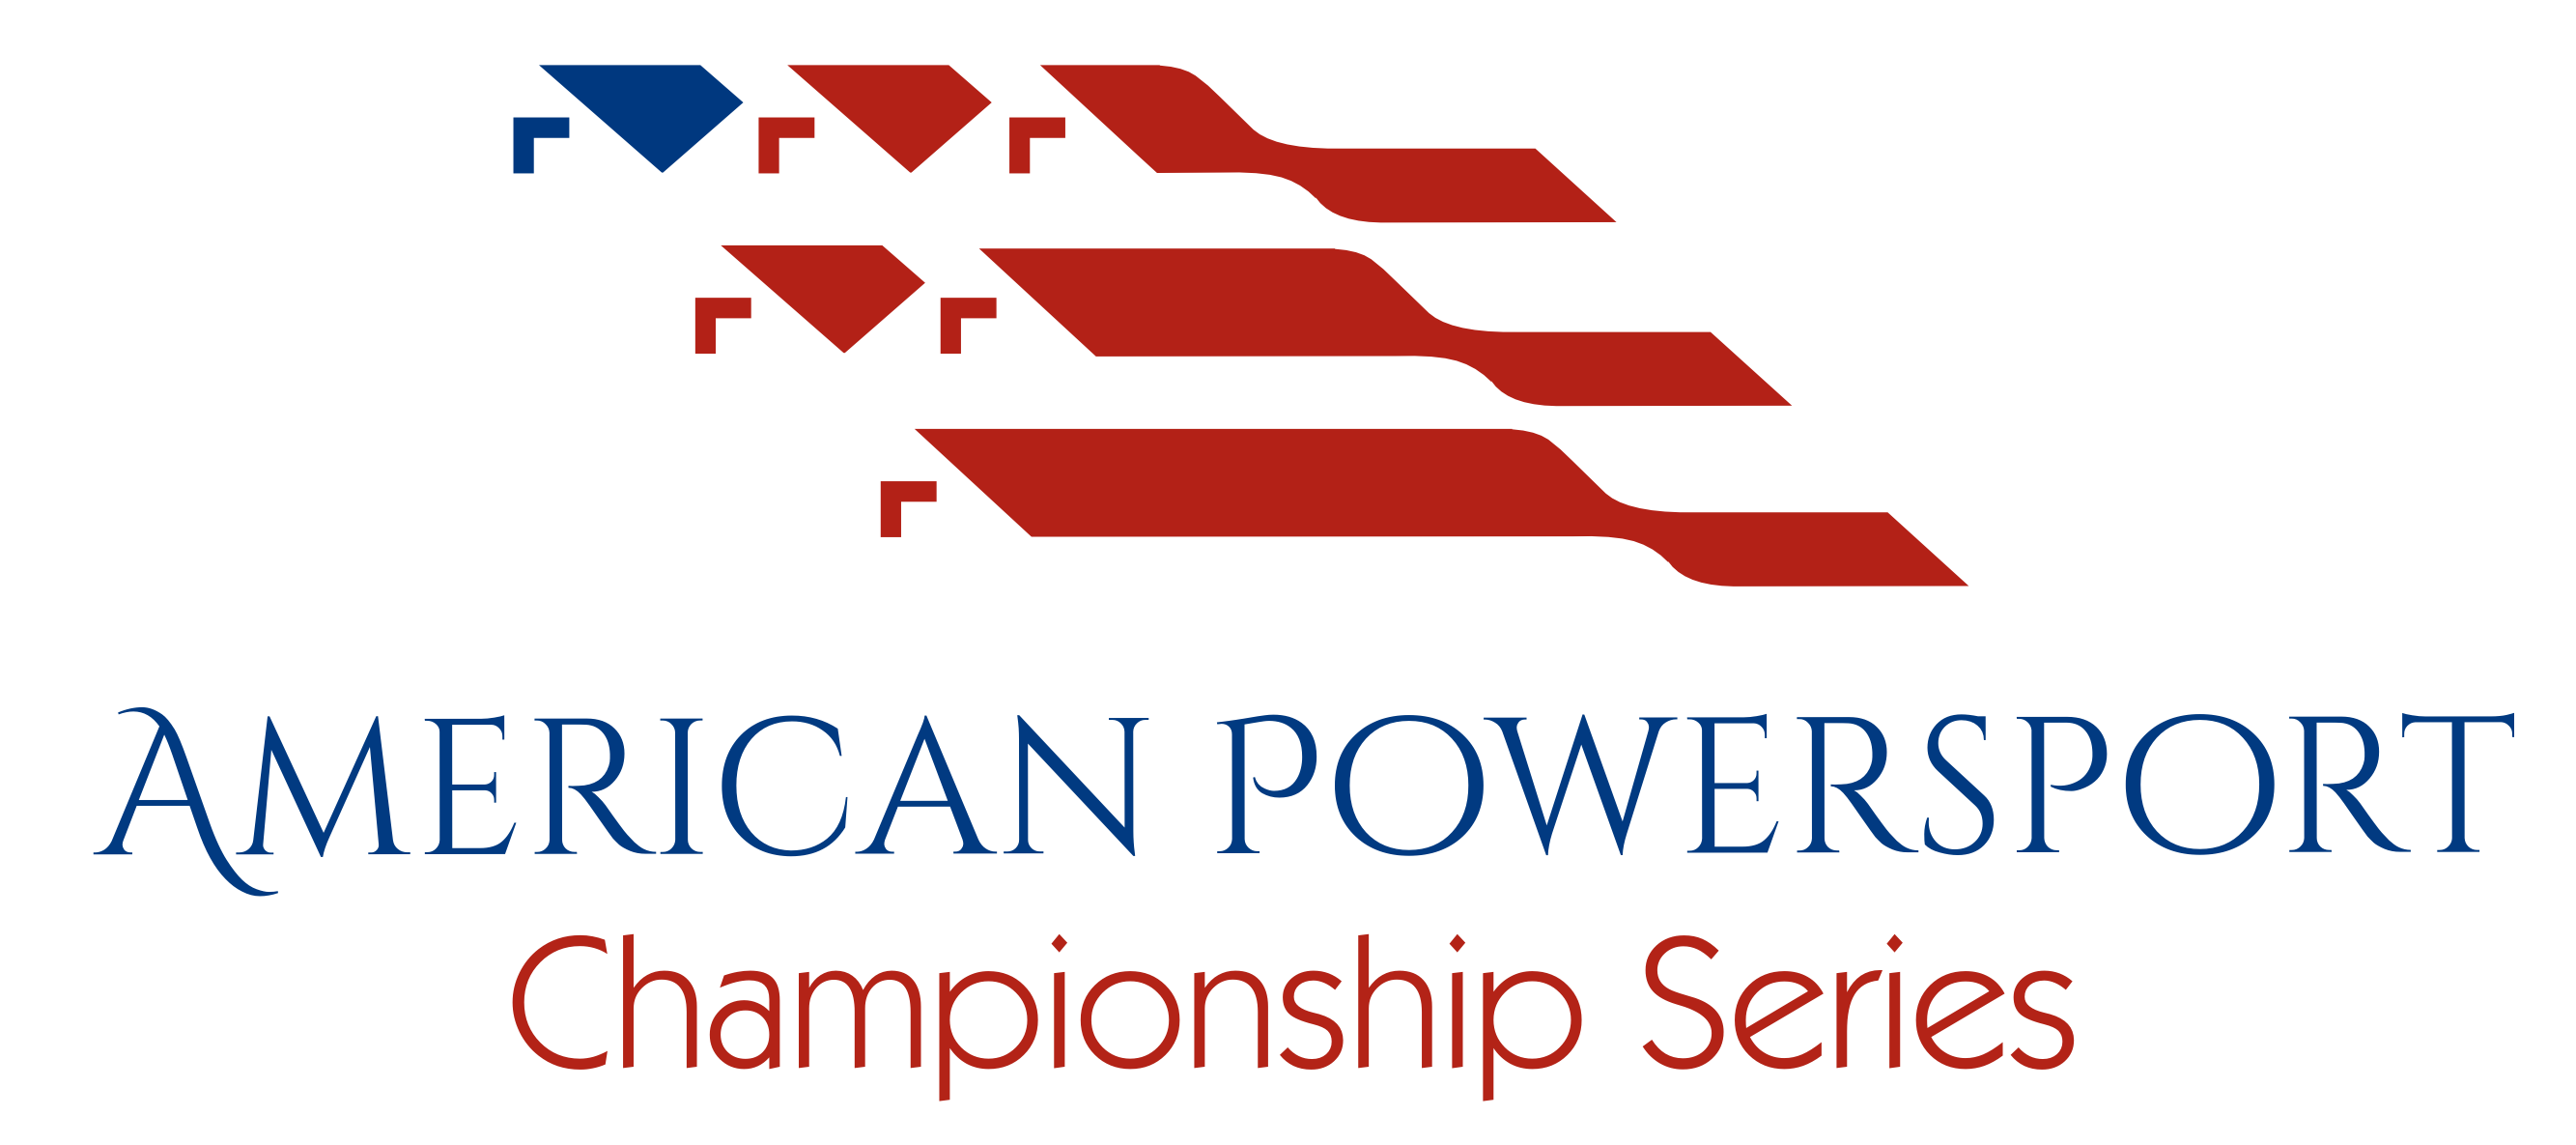 American Powersports Championship Series